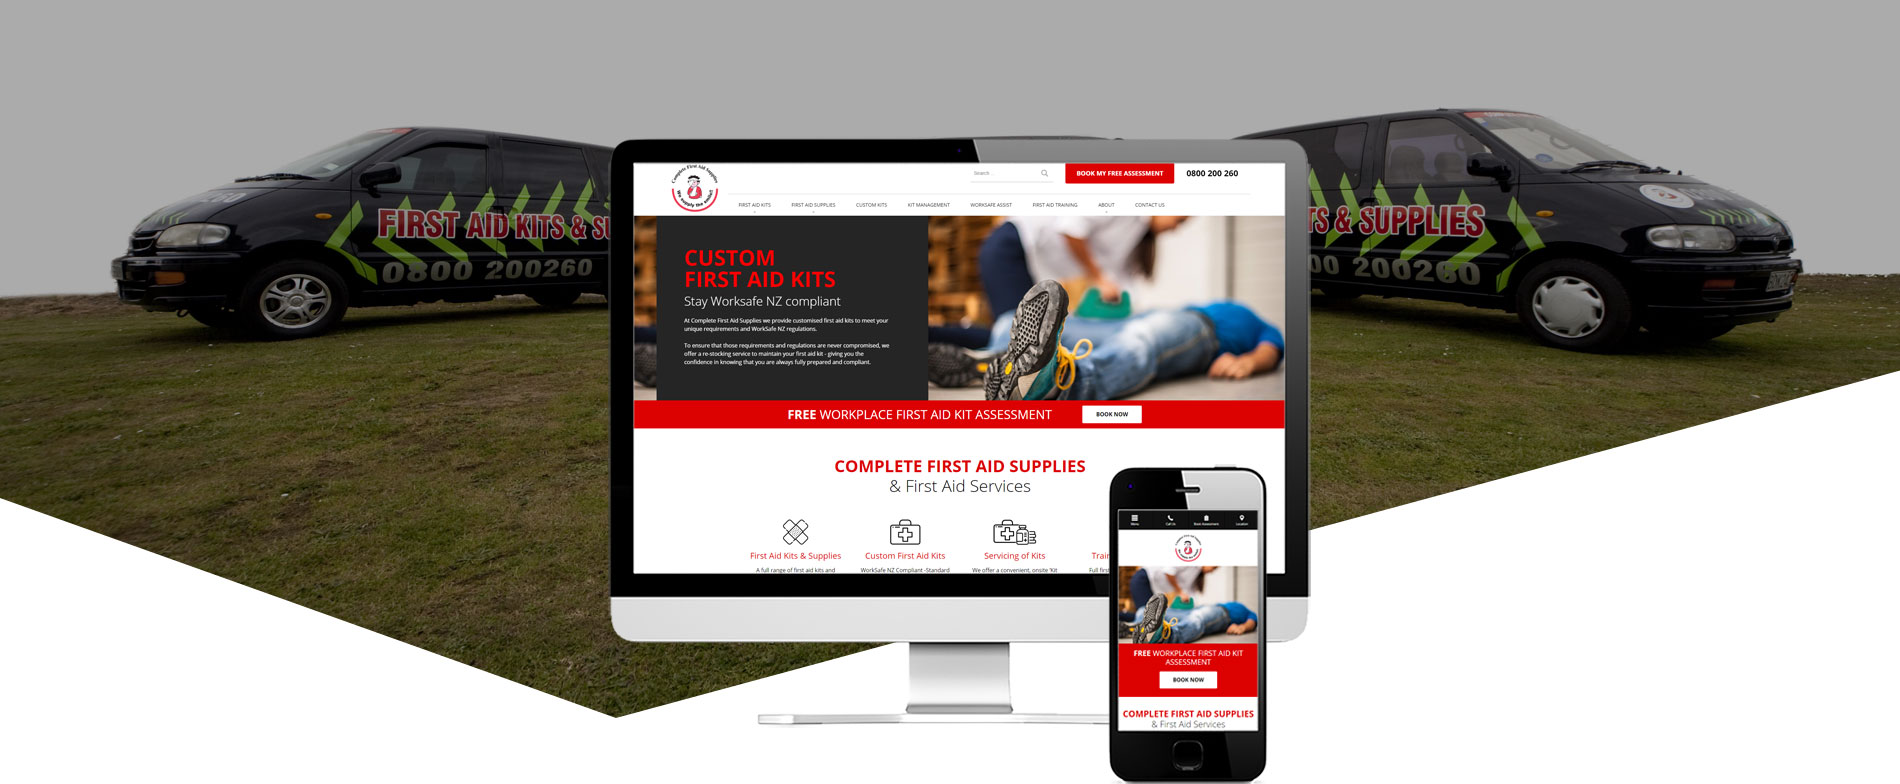 Complete First Aid project - Complete First Aid Supplies Website Re-design